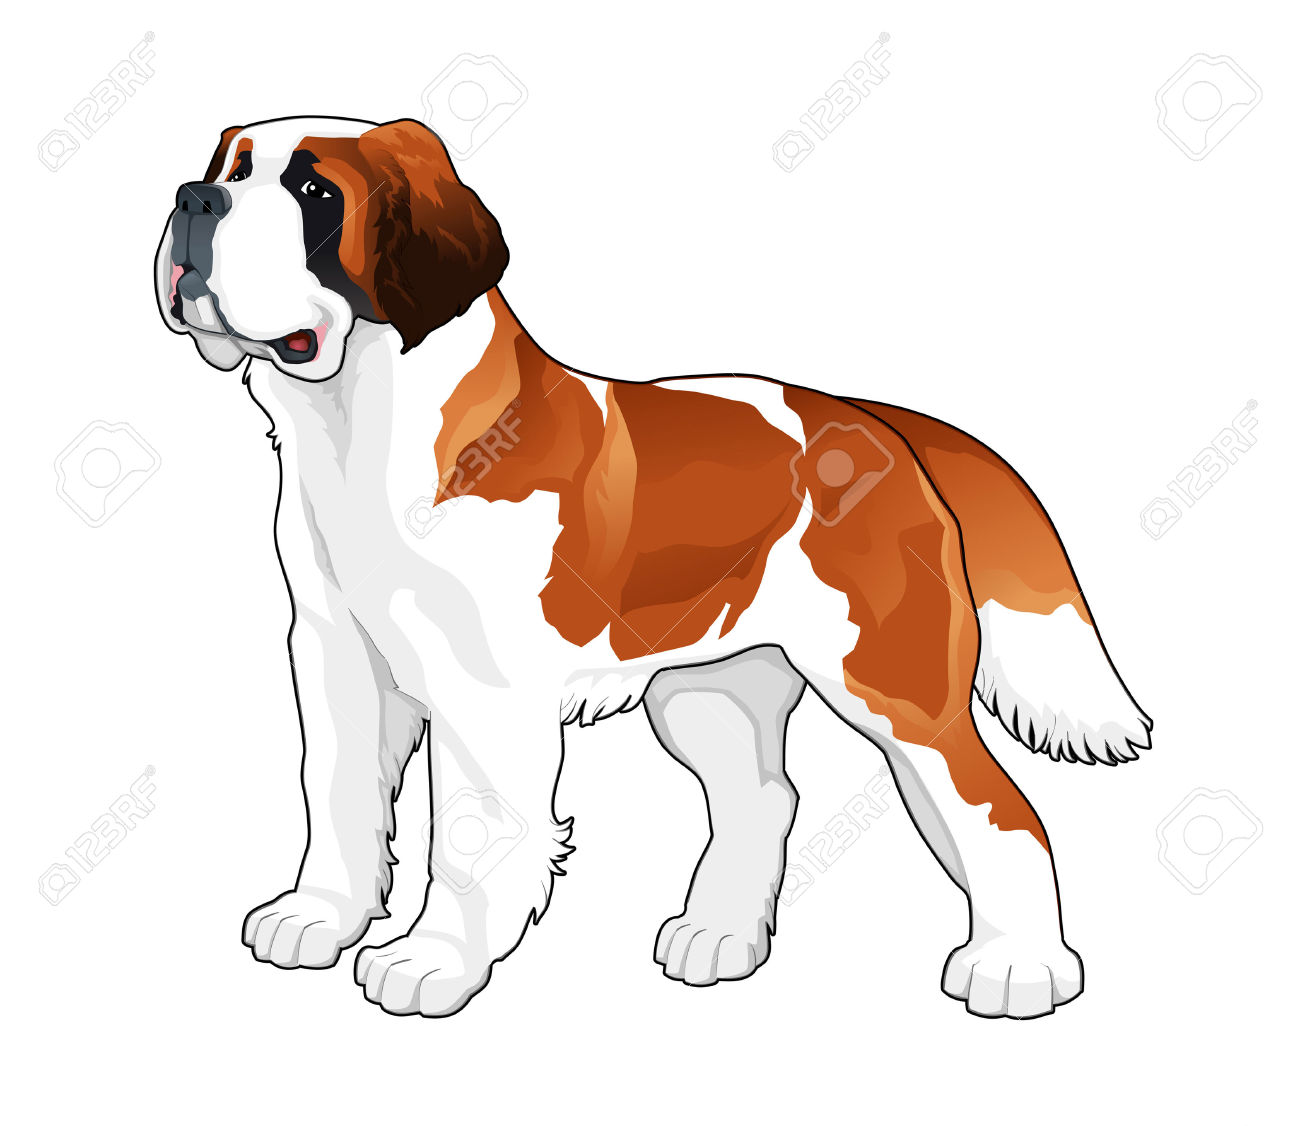 314 Saint Bernard Stock Vector Illustration And Royalty Free Saint.